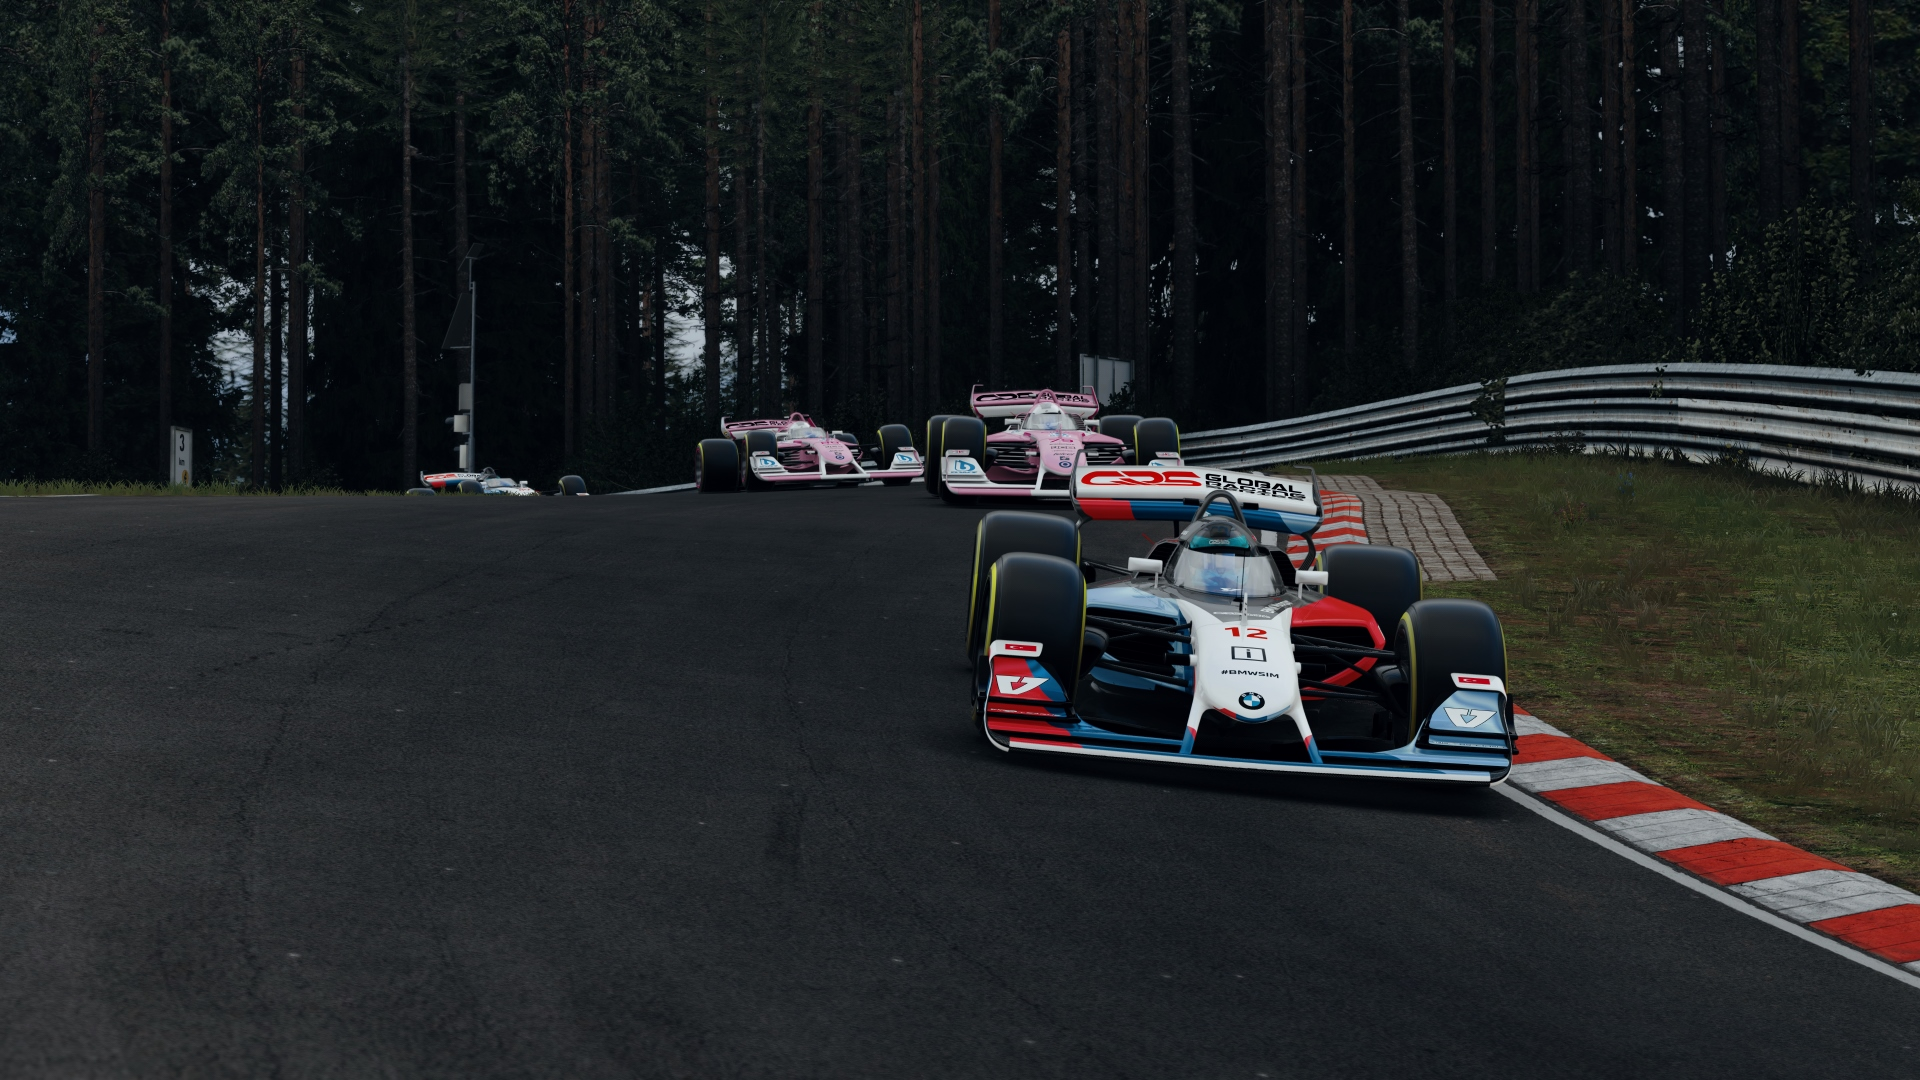 V10 R League Nordschleife Pic 2